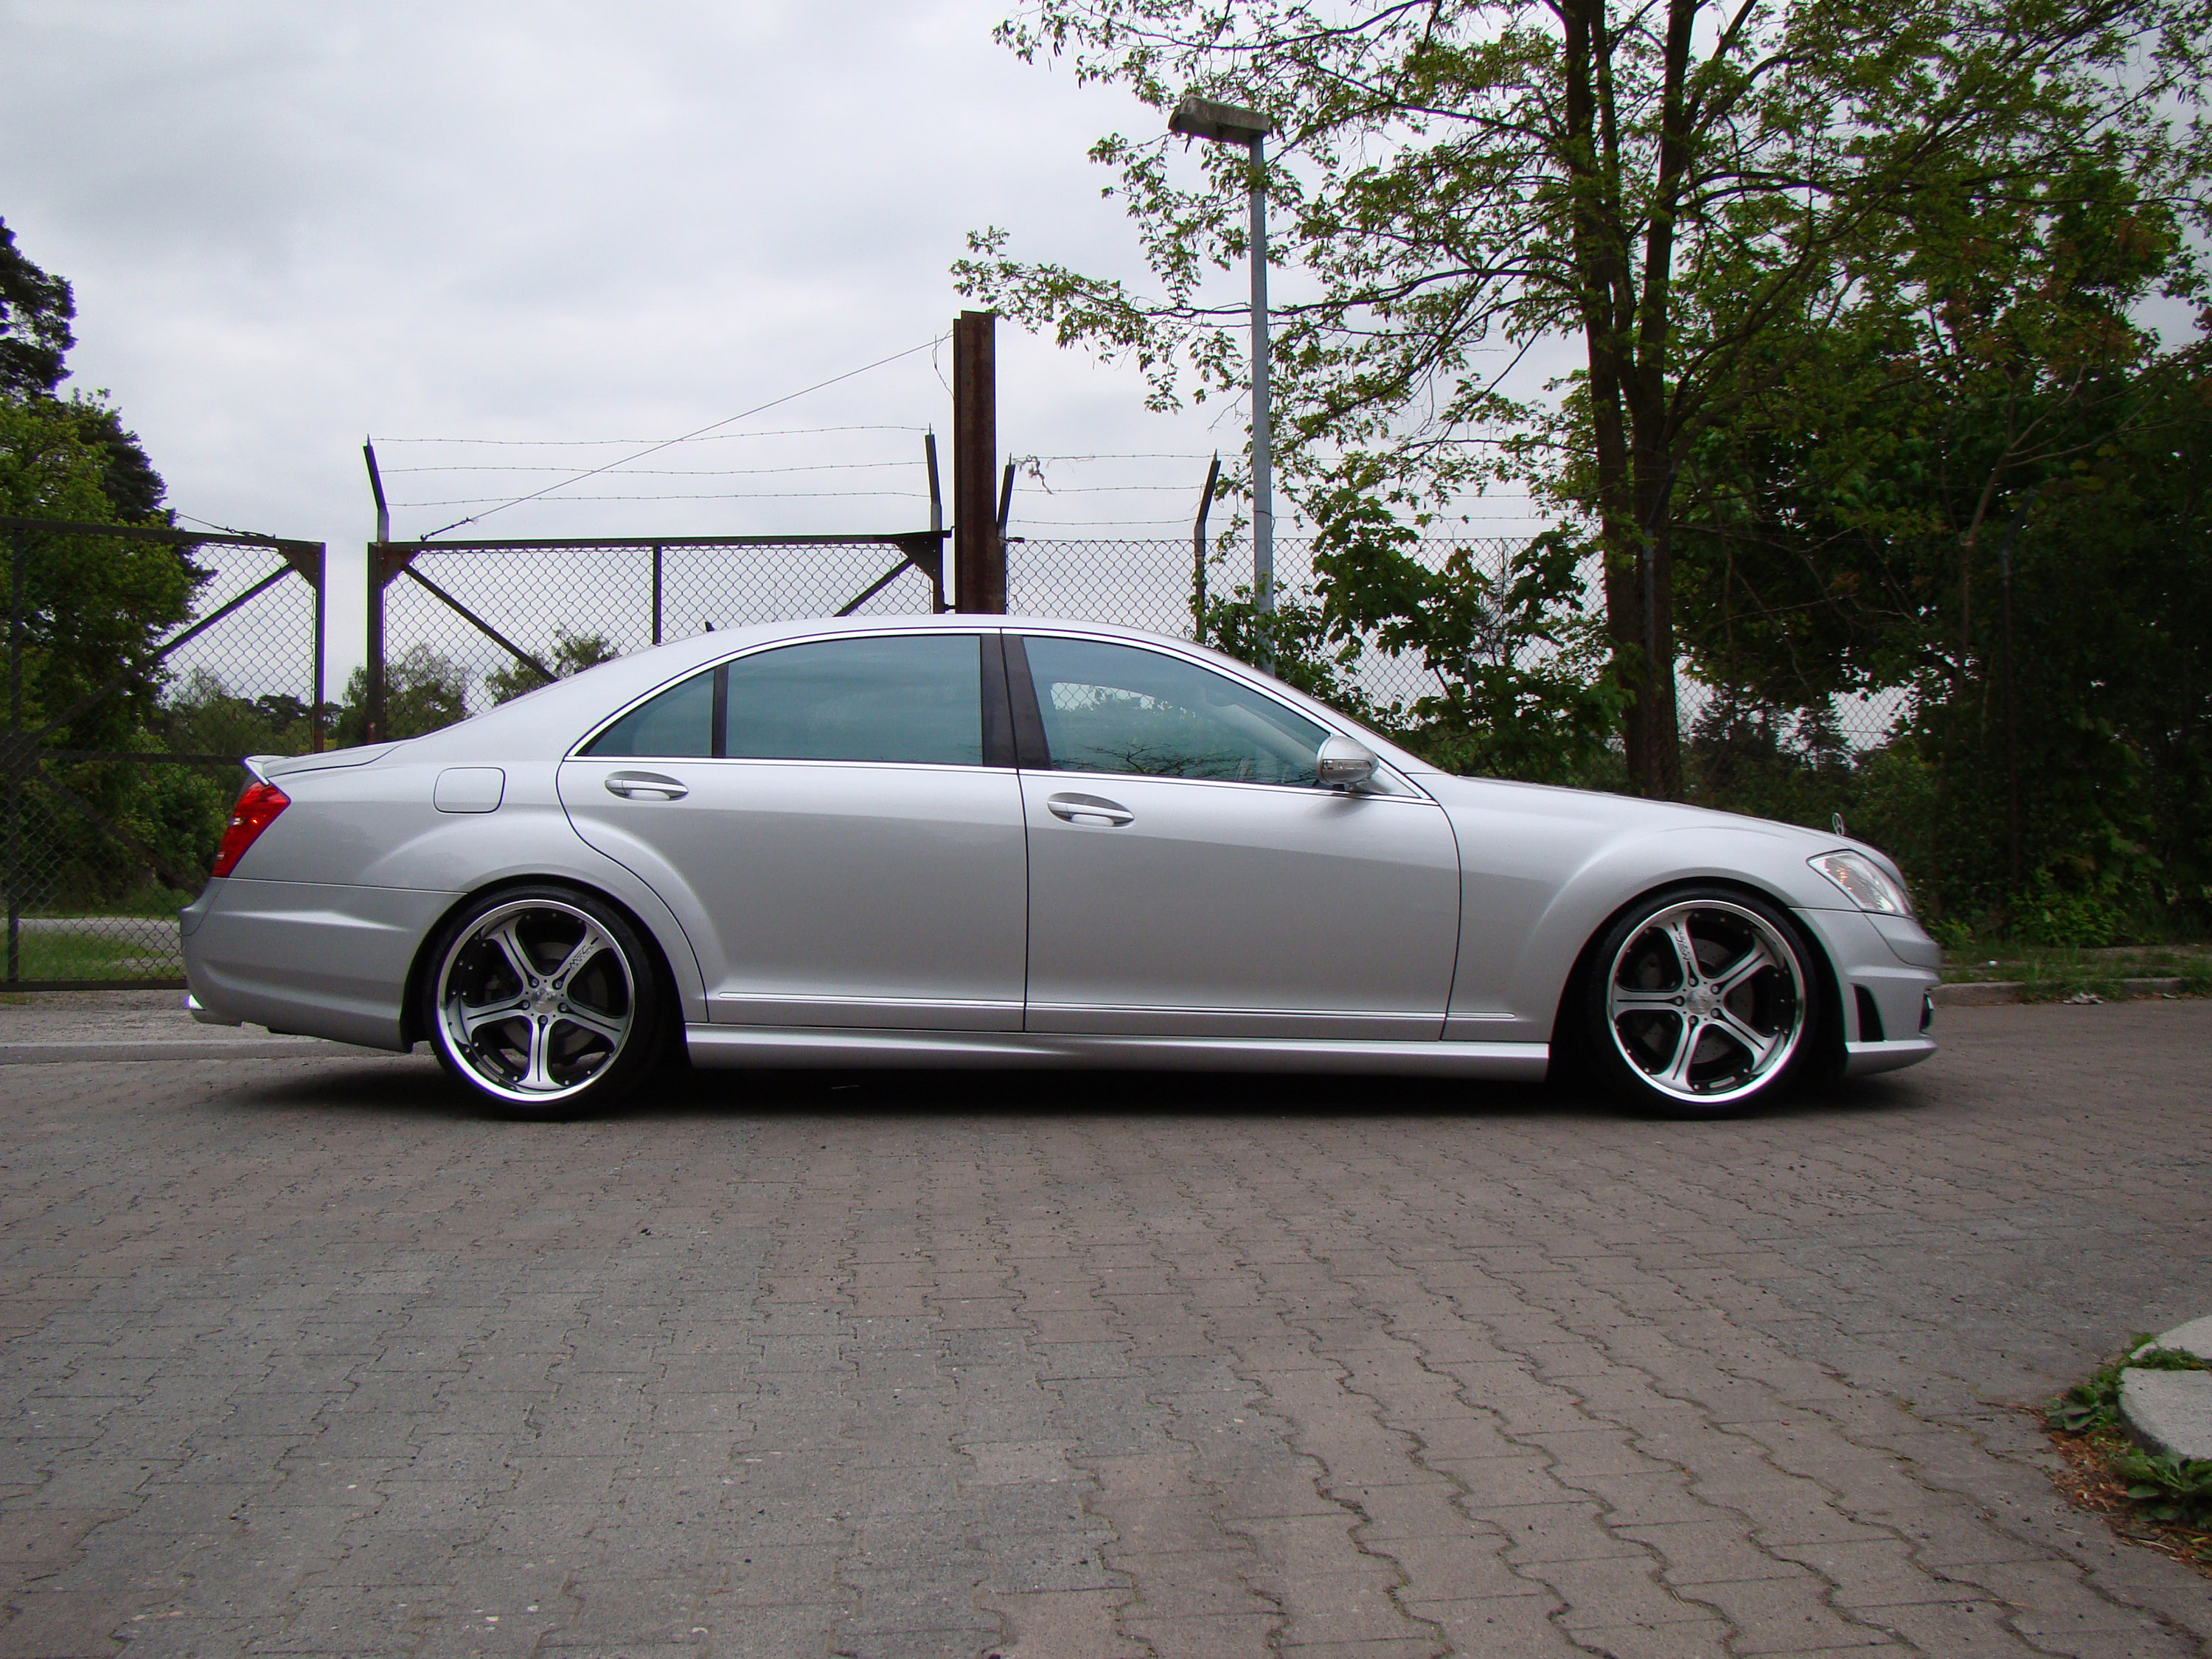 Mercedes benz s550 refined by mec design for Mercedes benz of cleveland